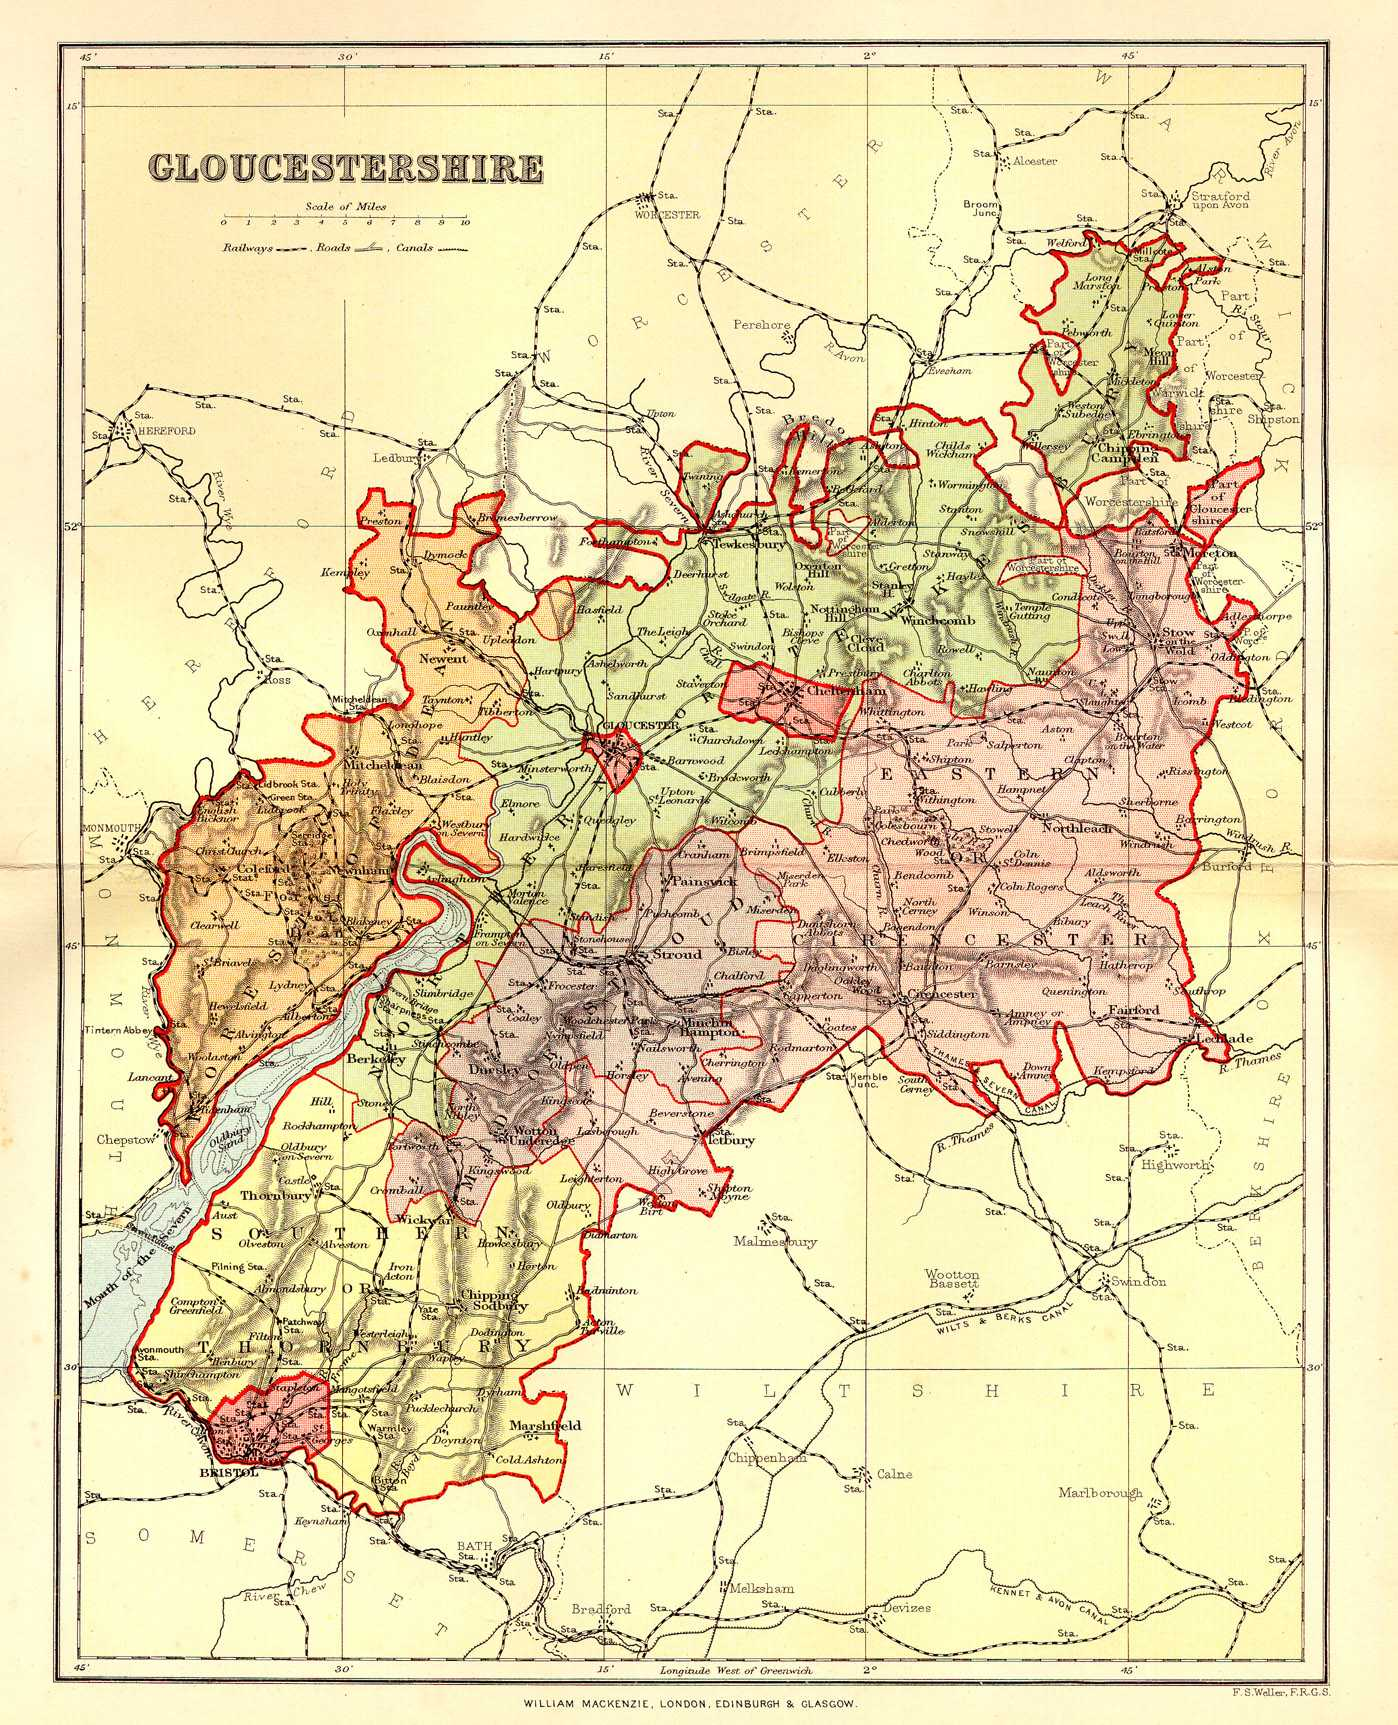 Historical description of Gloucestershire England